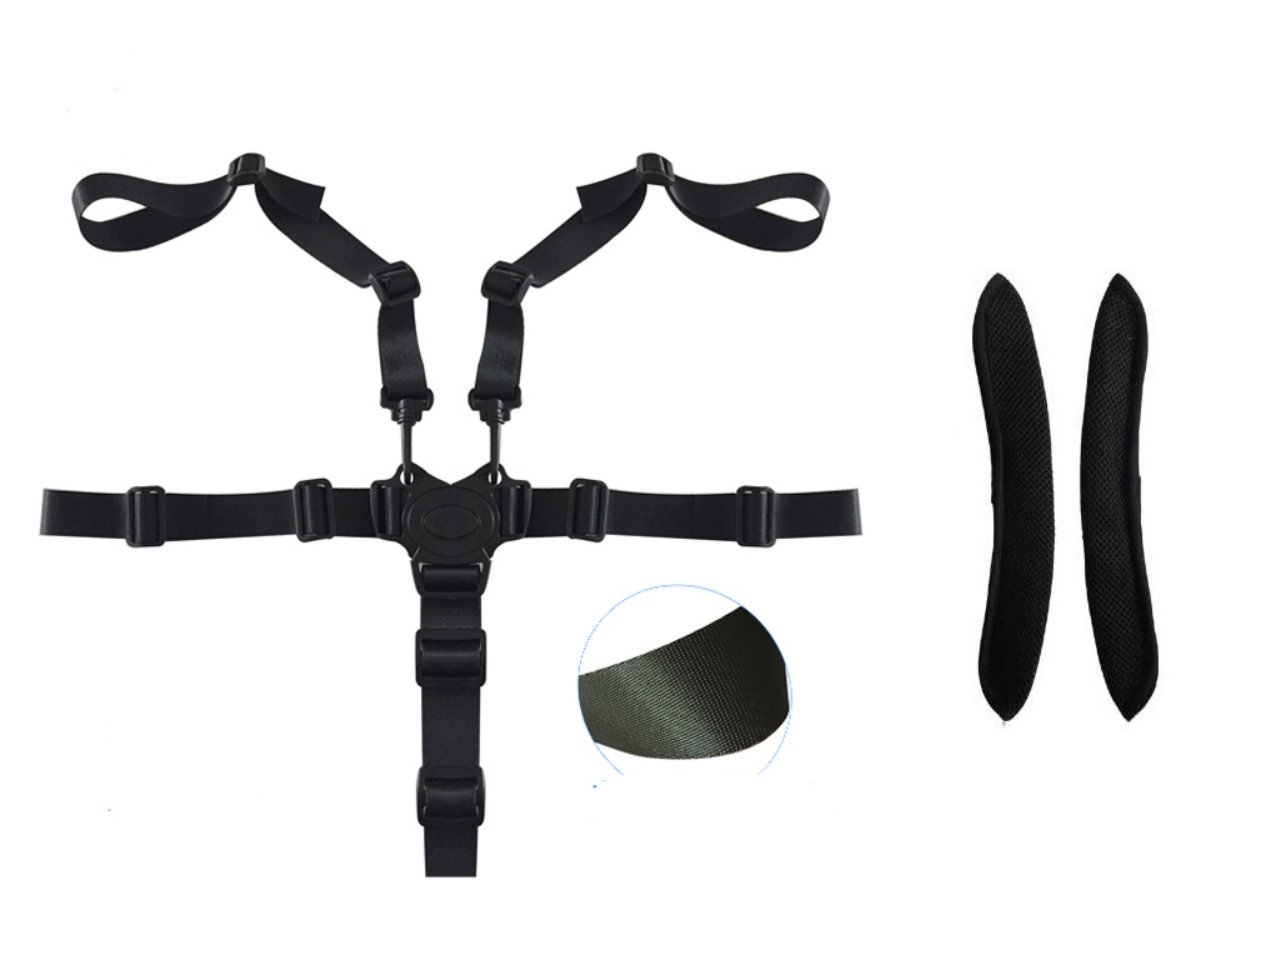 iZoeL 5 Point Harness Baby Safety Harness Strap Belt for High Chair Buggy Pushchair with Shoulder Cushion Pads Adjustable Durable Nylon